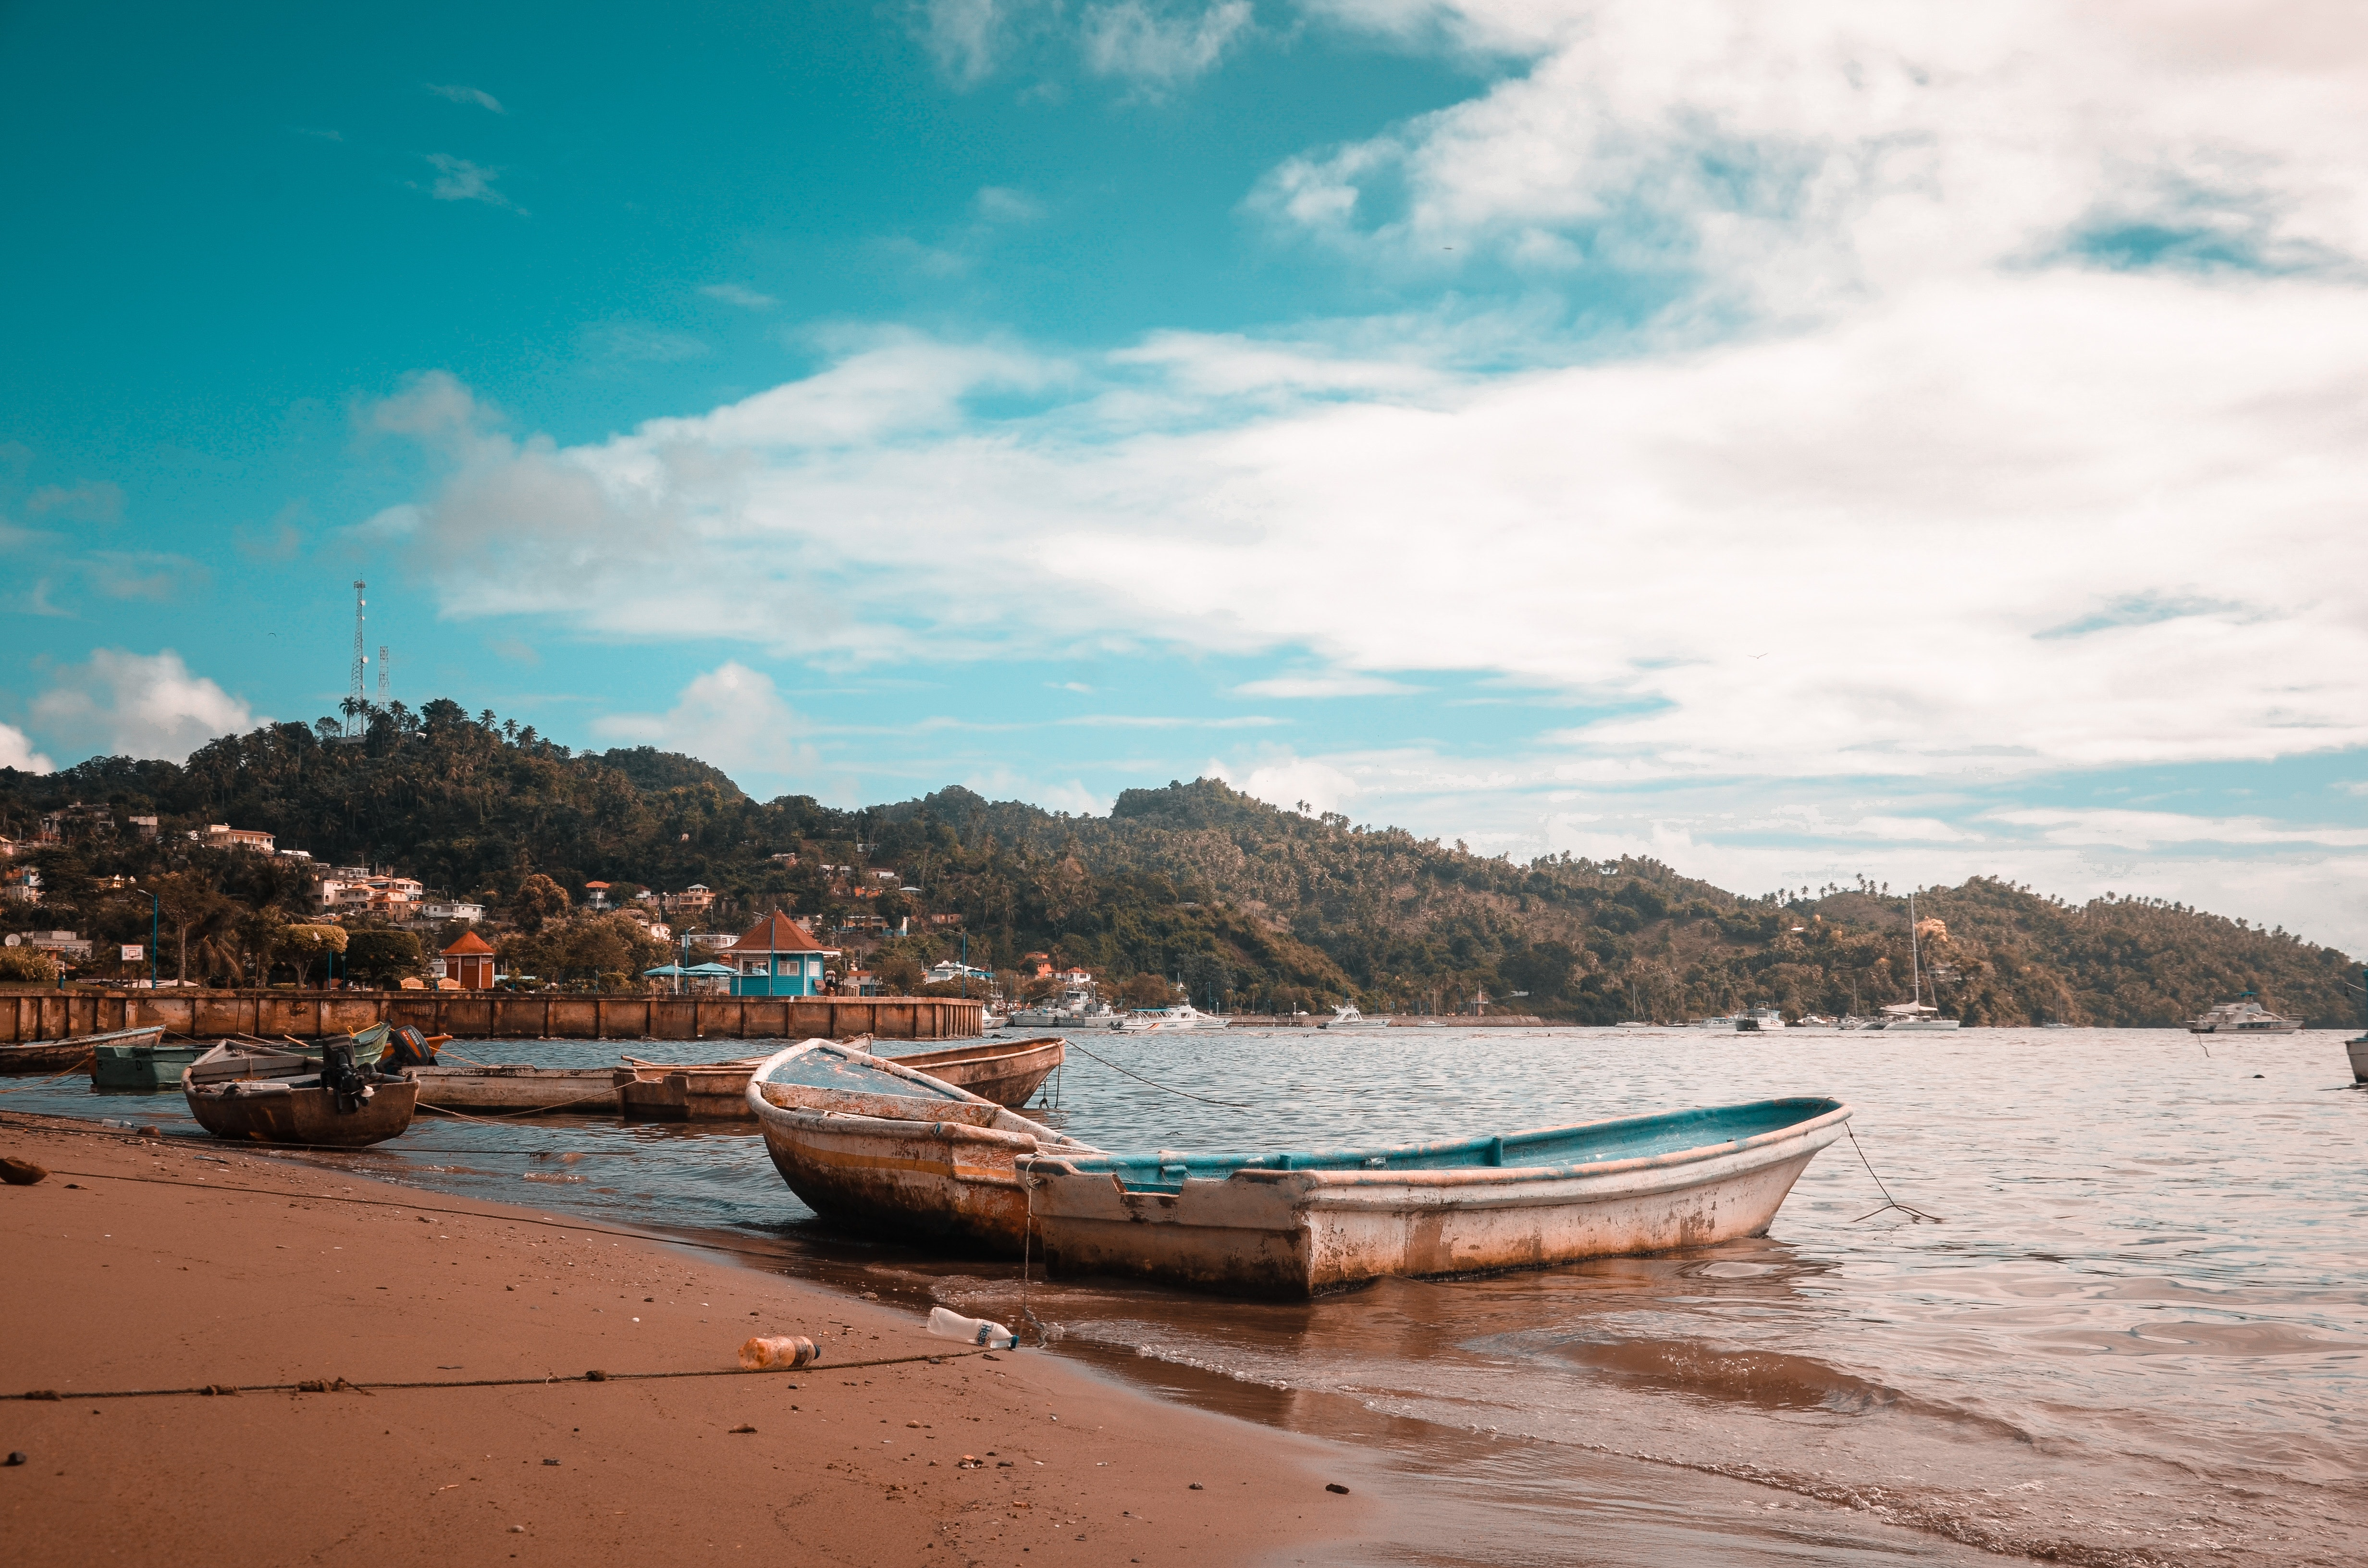 Boats on seashore during daytime photo